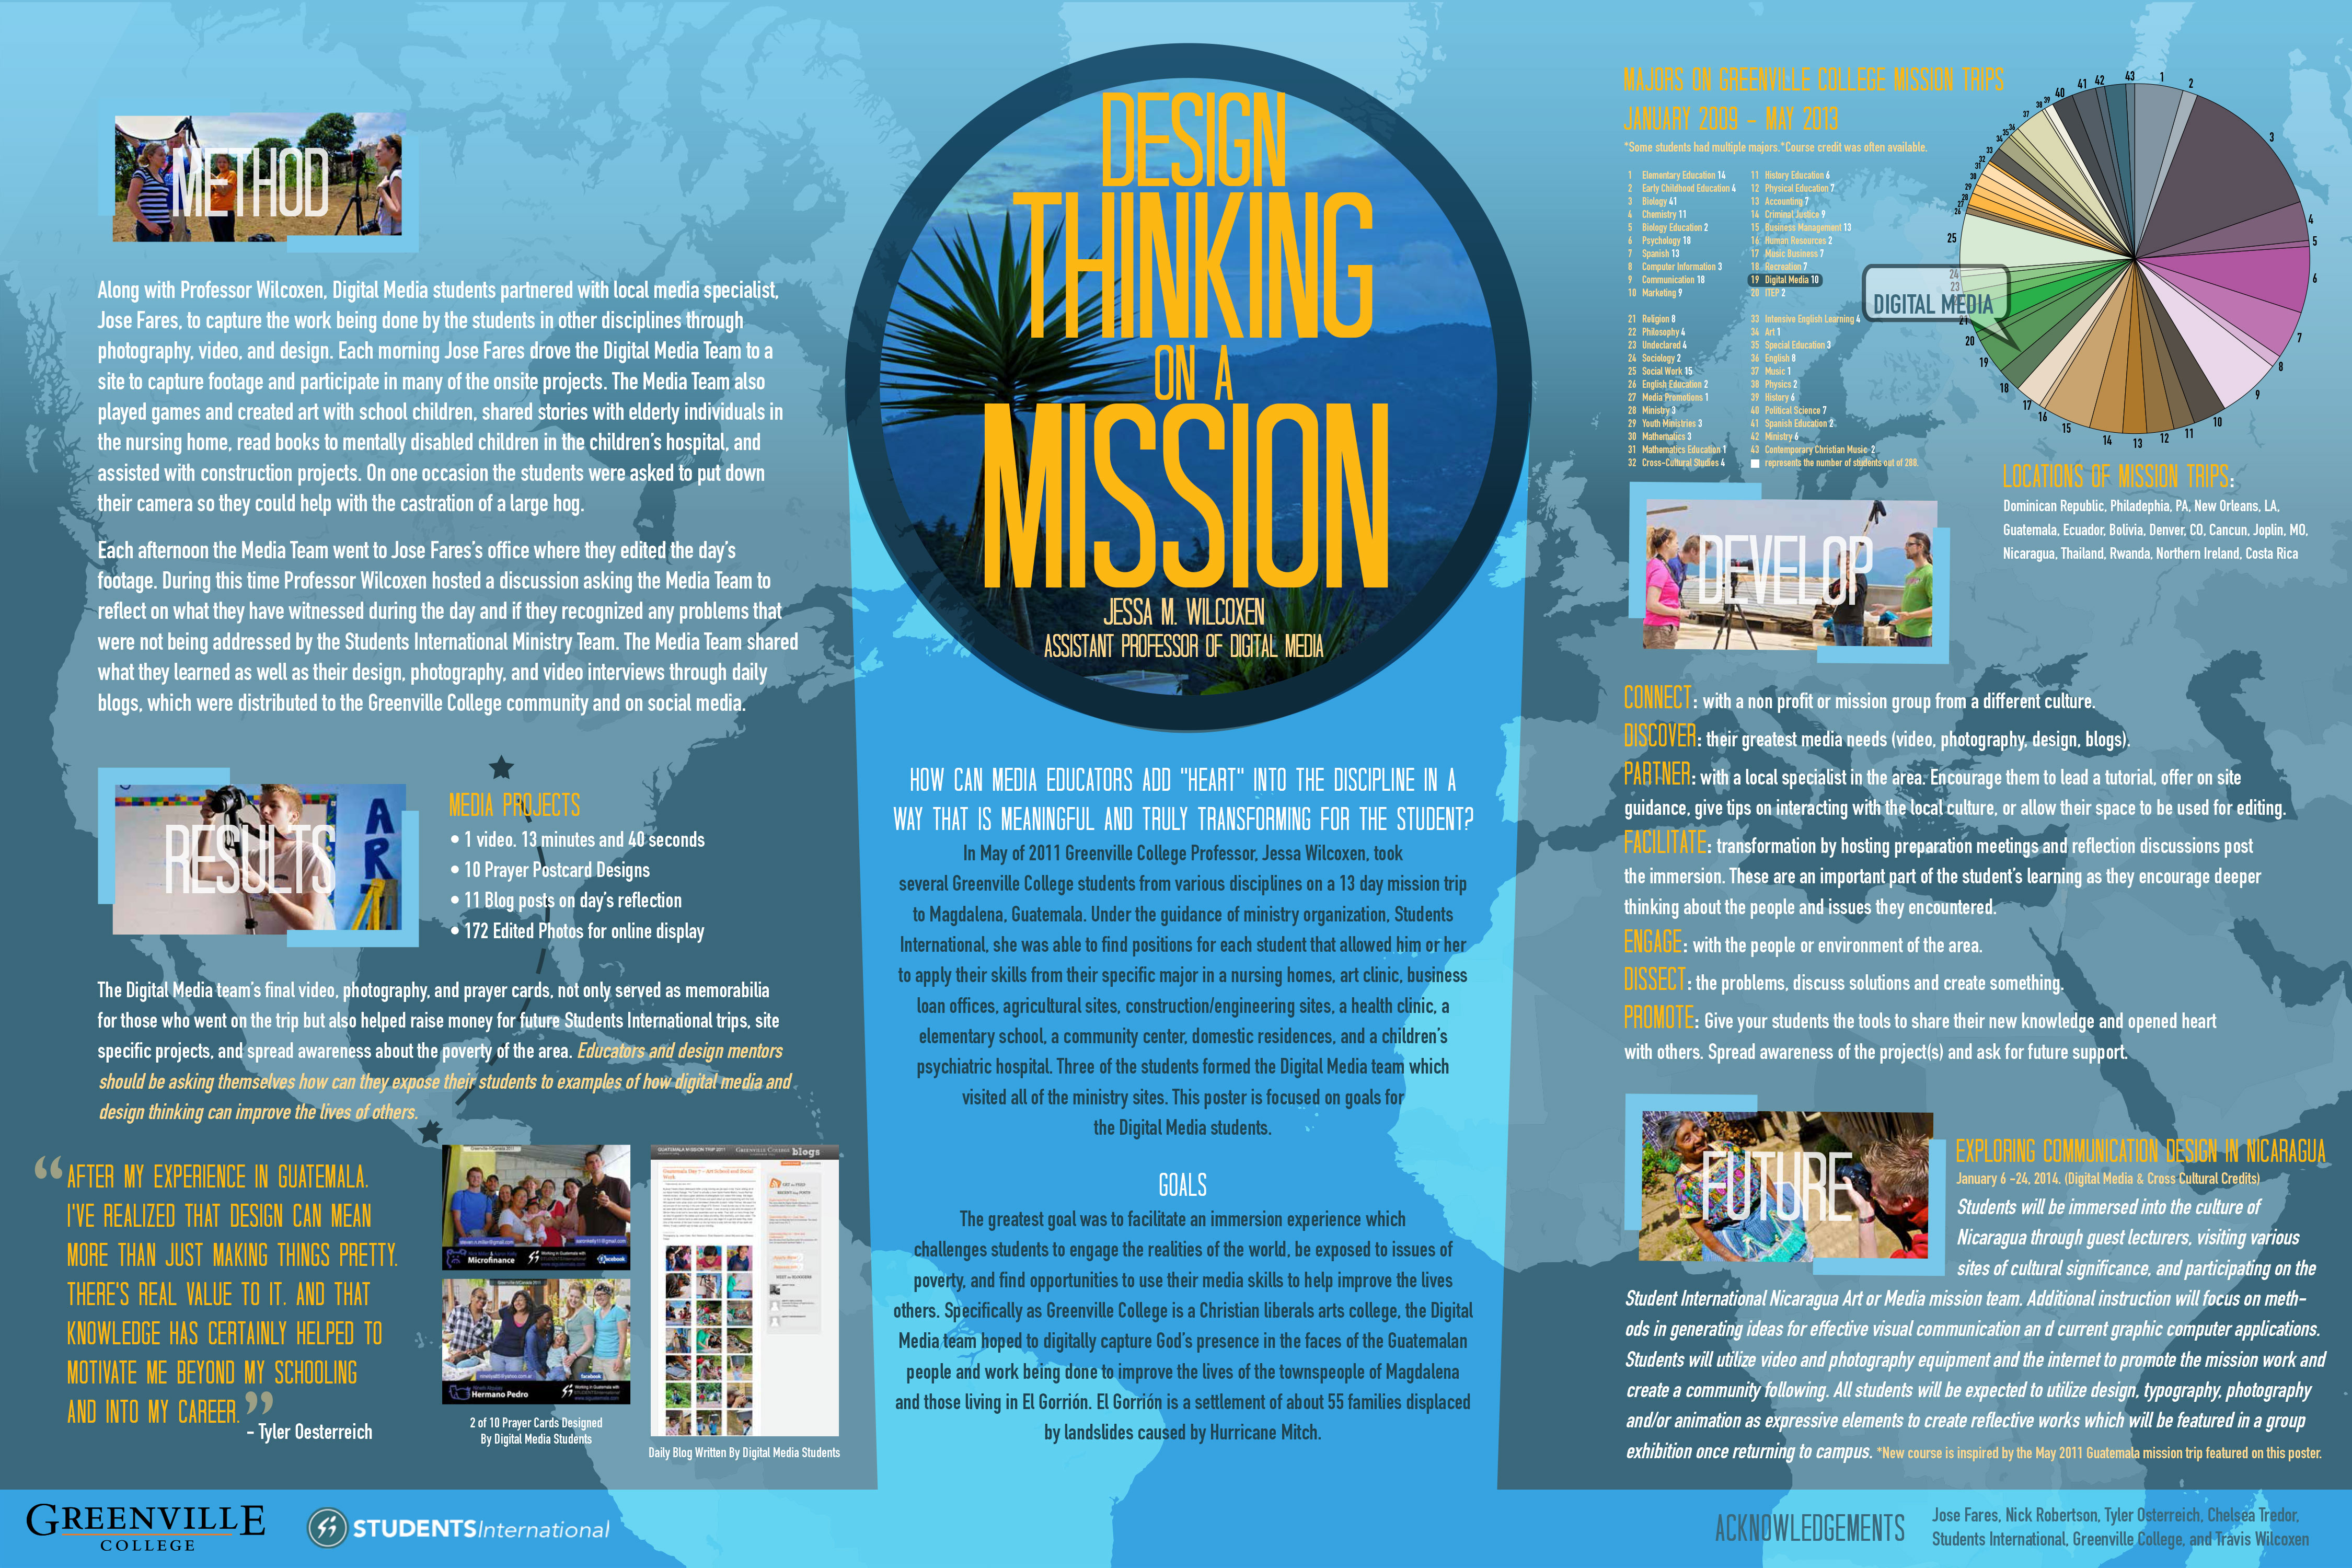 Poster design online -  Design Thinking On A Mission